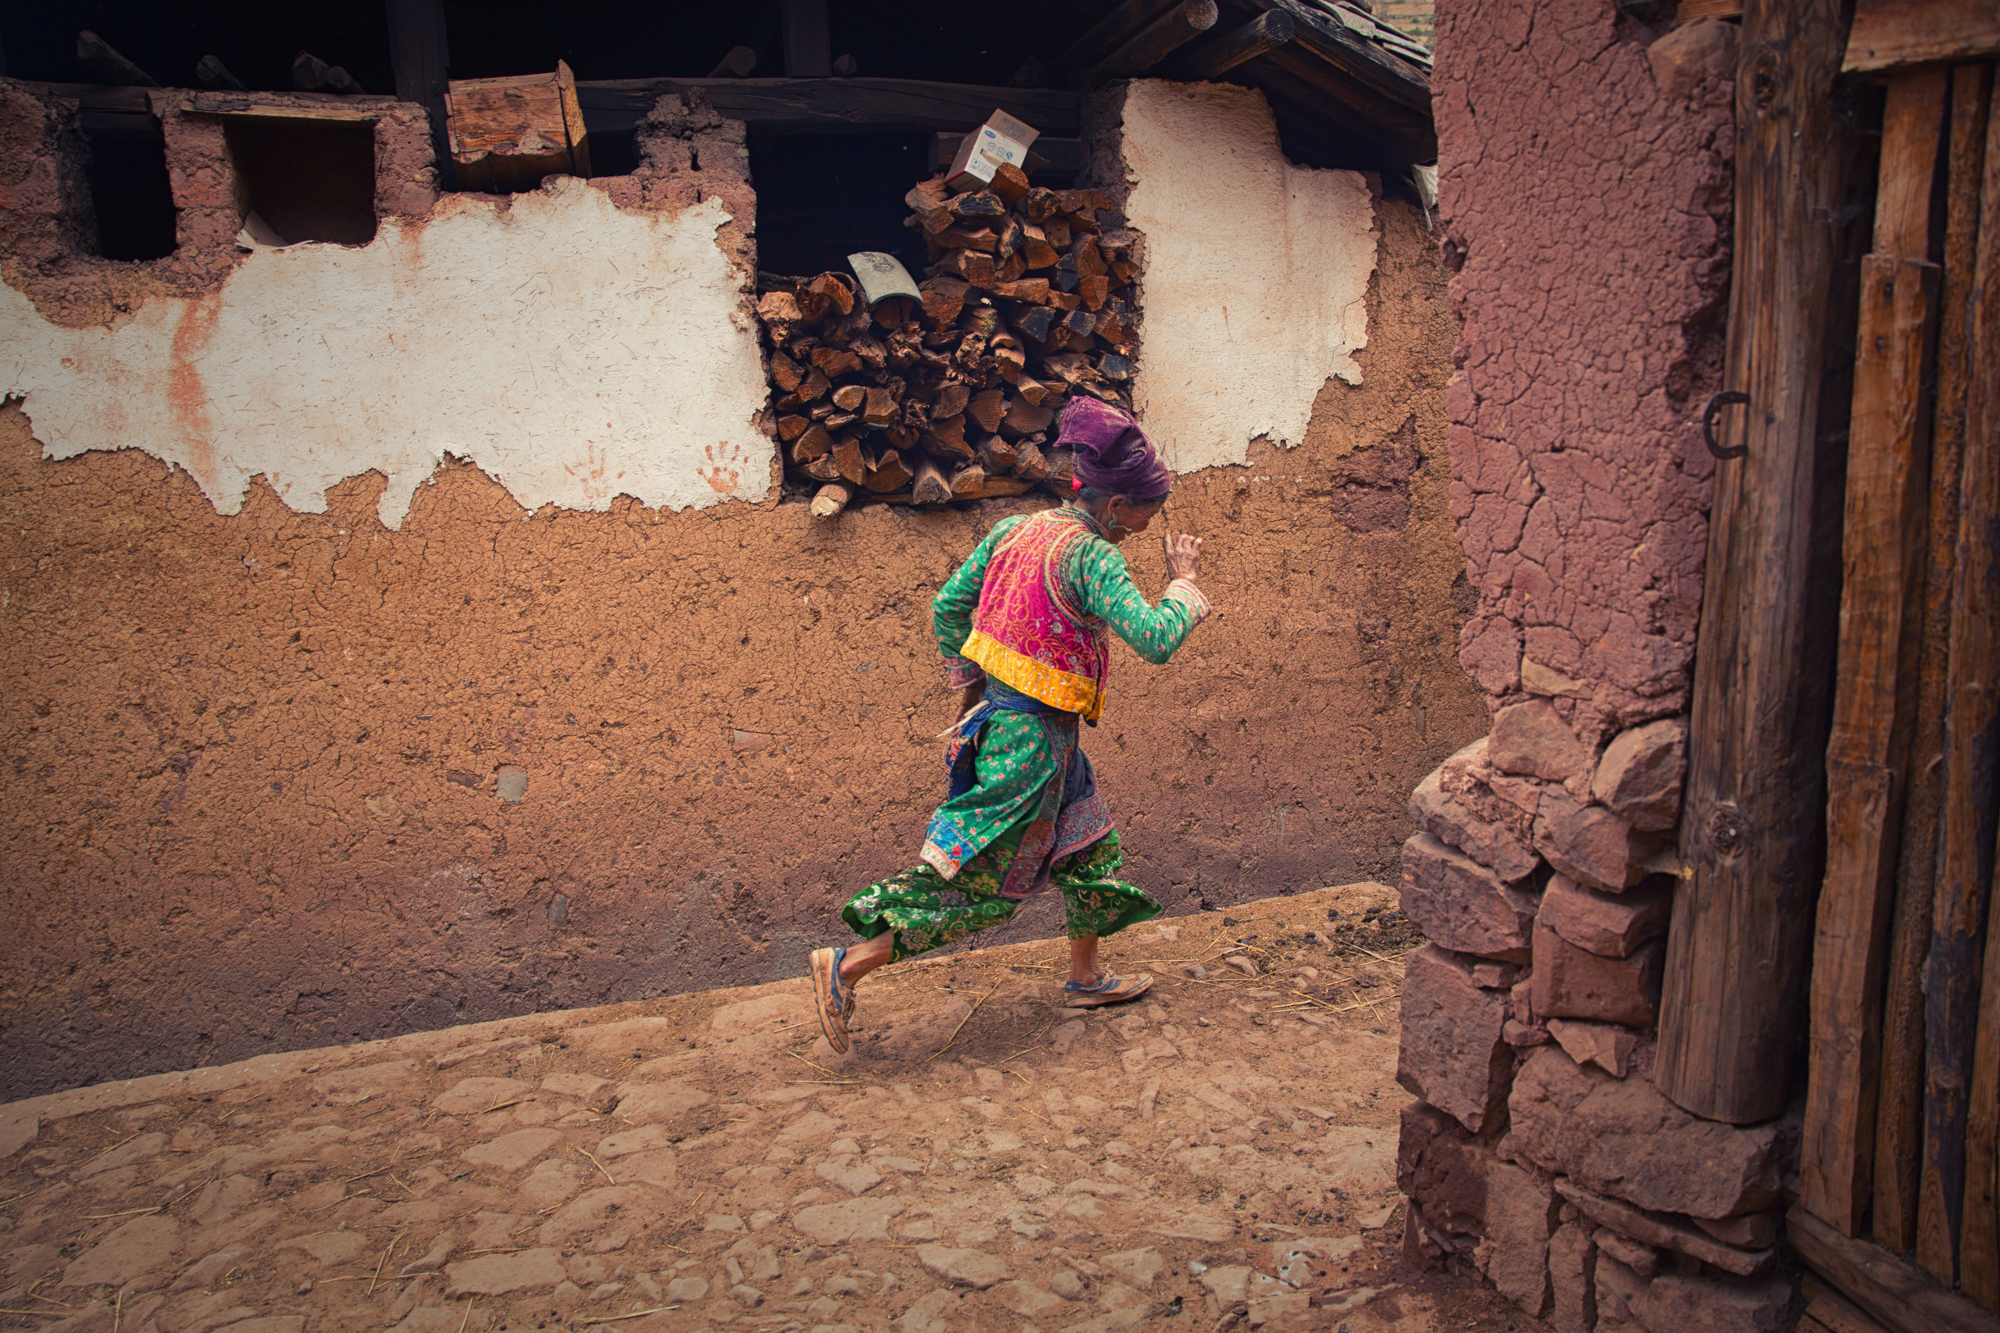 she bashfully ran in a swoosh of color~ Yi Minority~ Yunnan